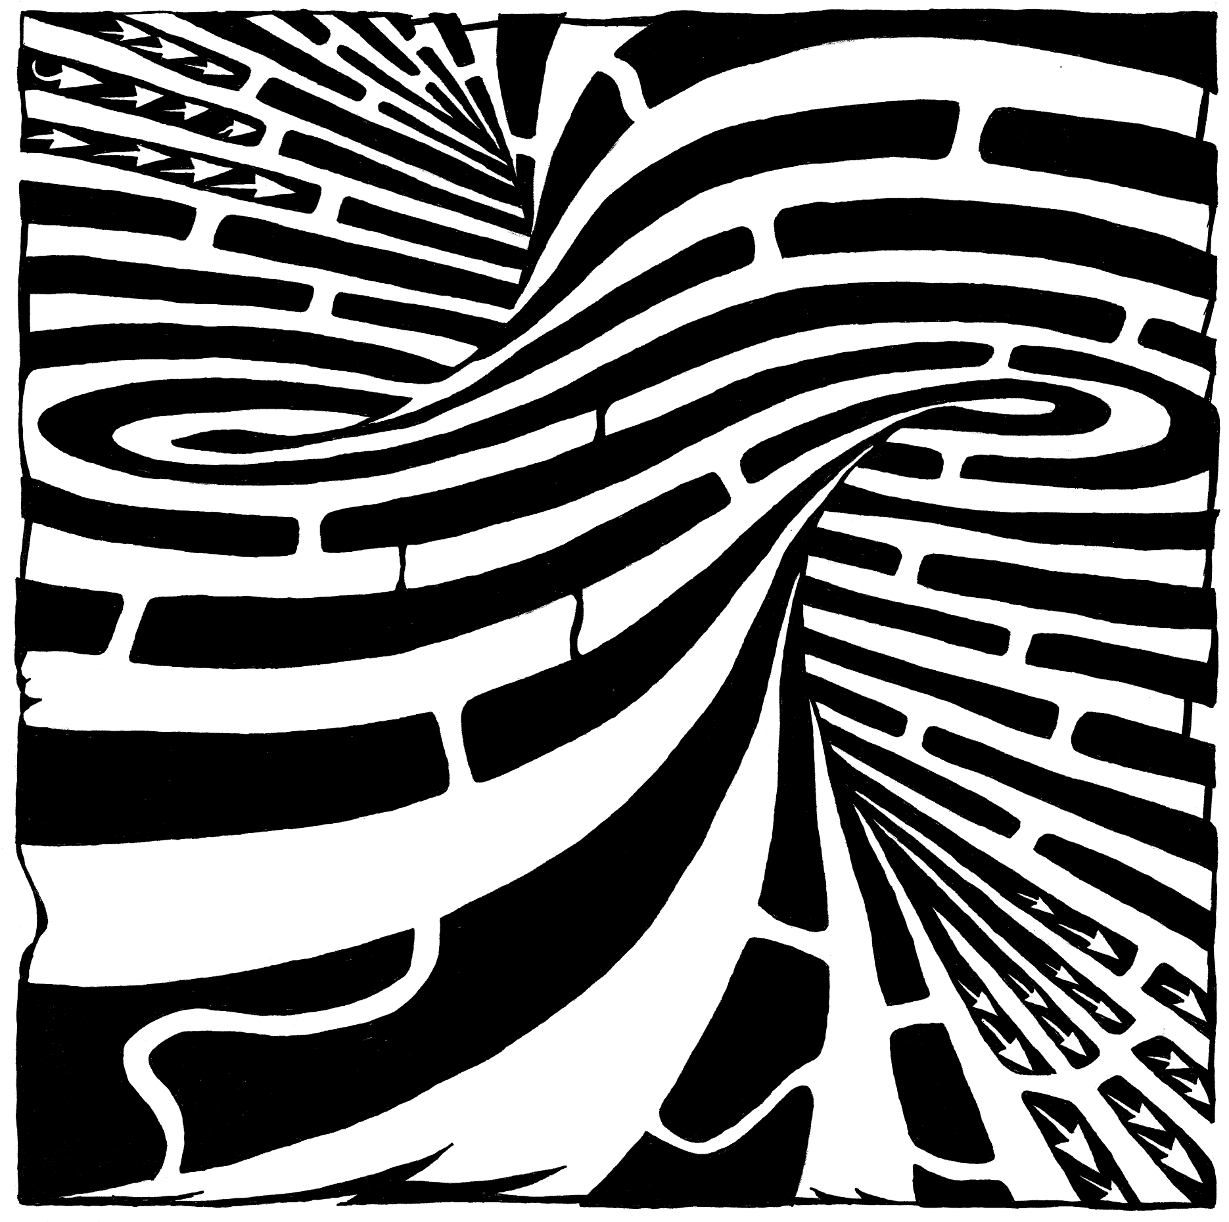 Drawn maze spiral And  the art Mazes